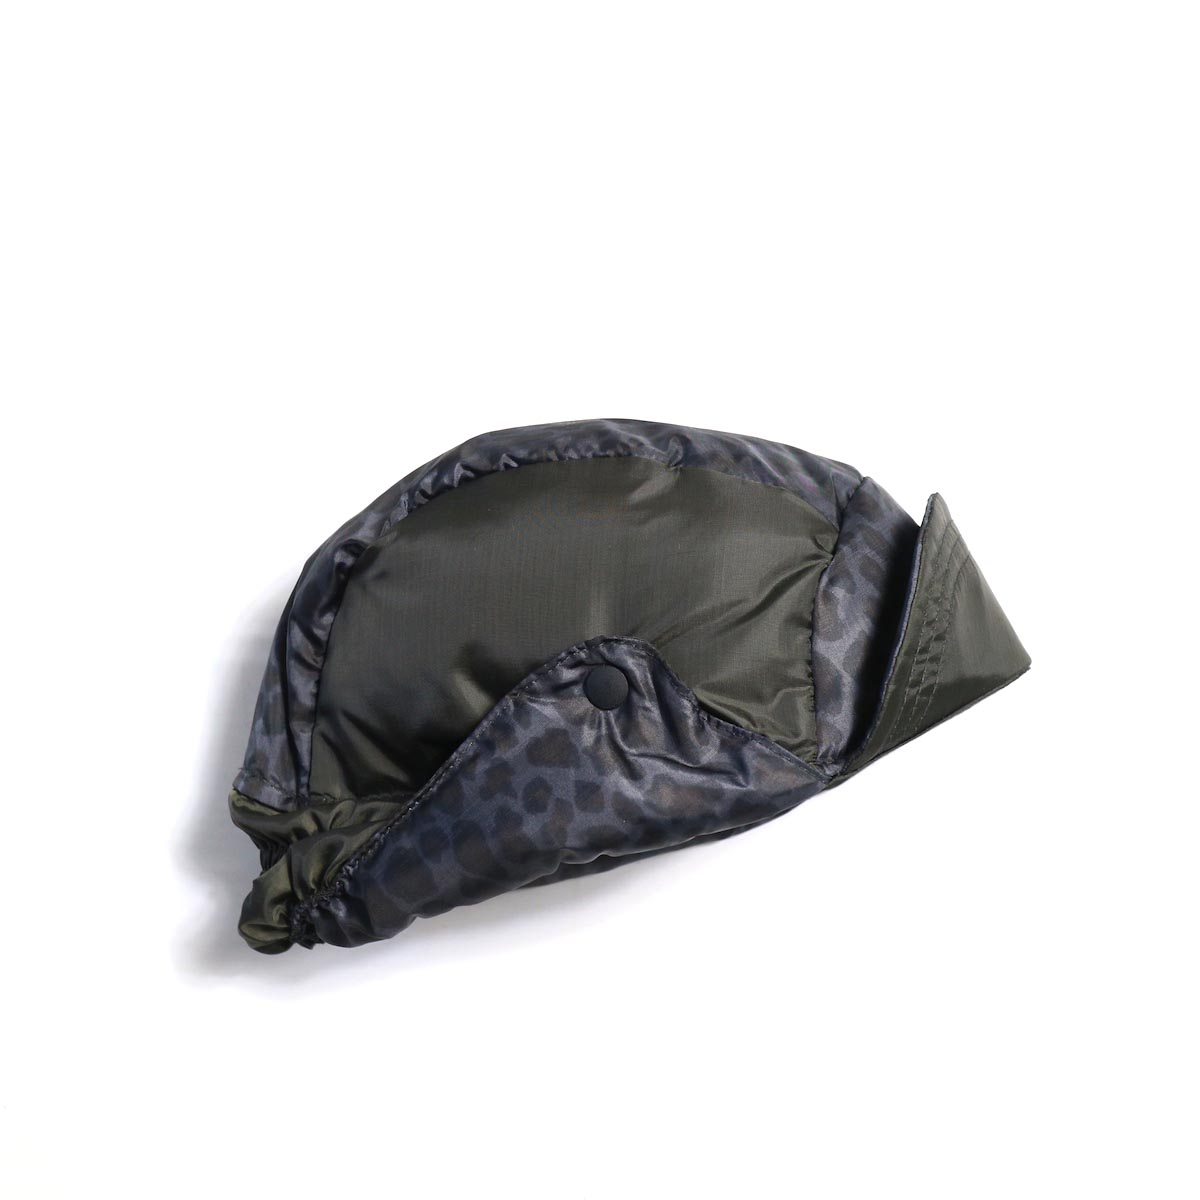 Needles / Bird Shooting Cap - Poly Taffeta / Leopard (Black)